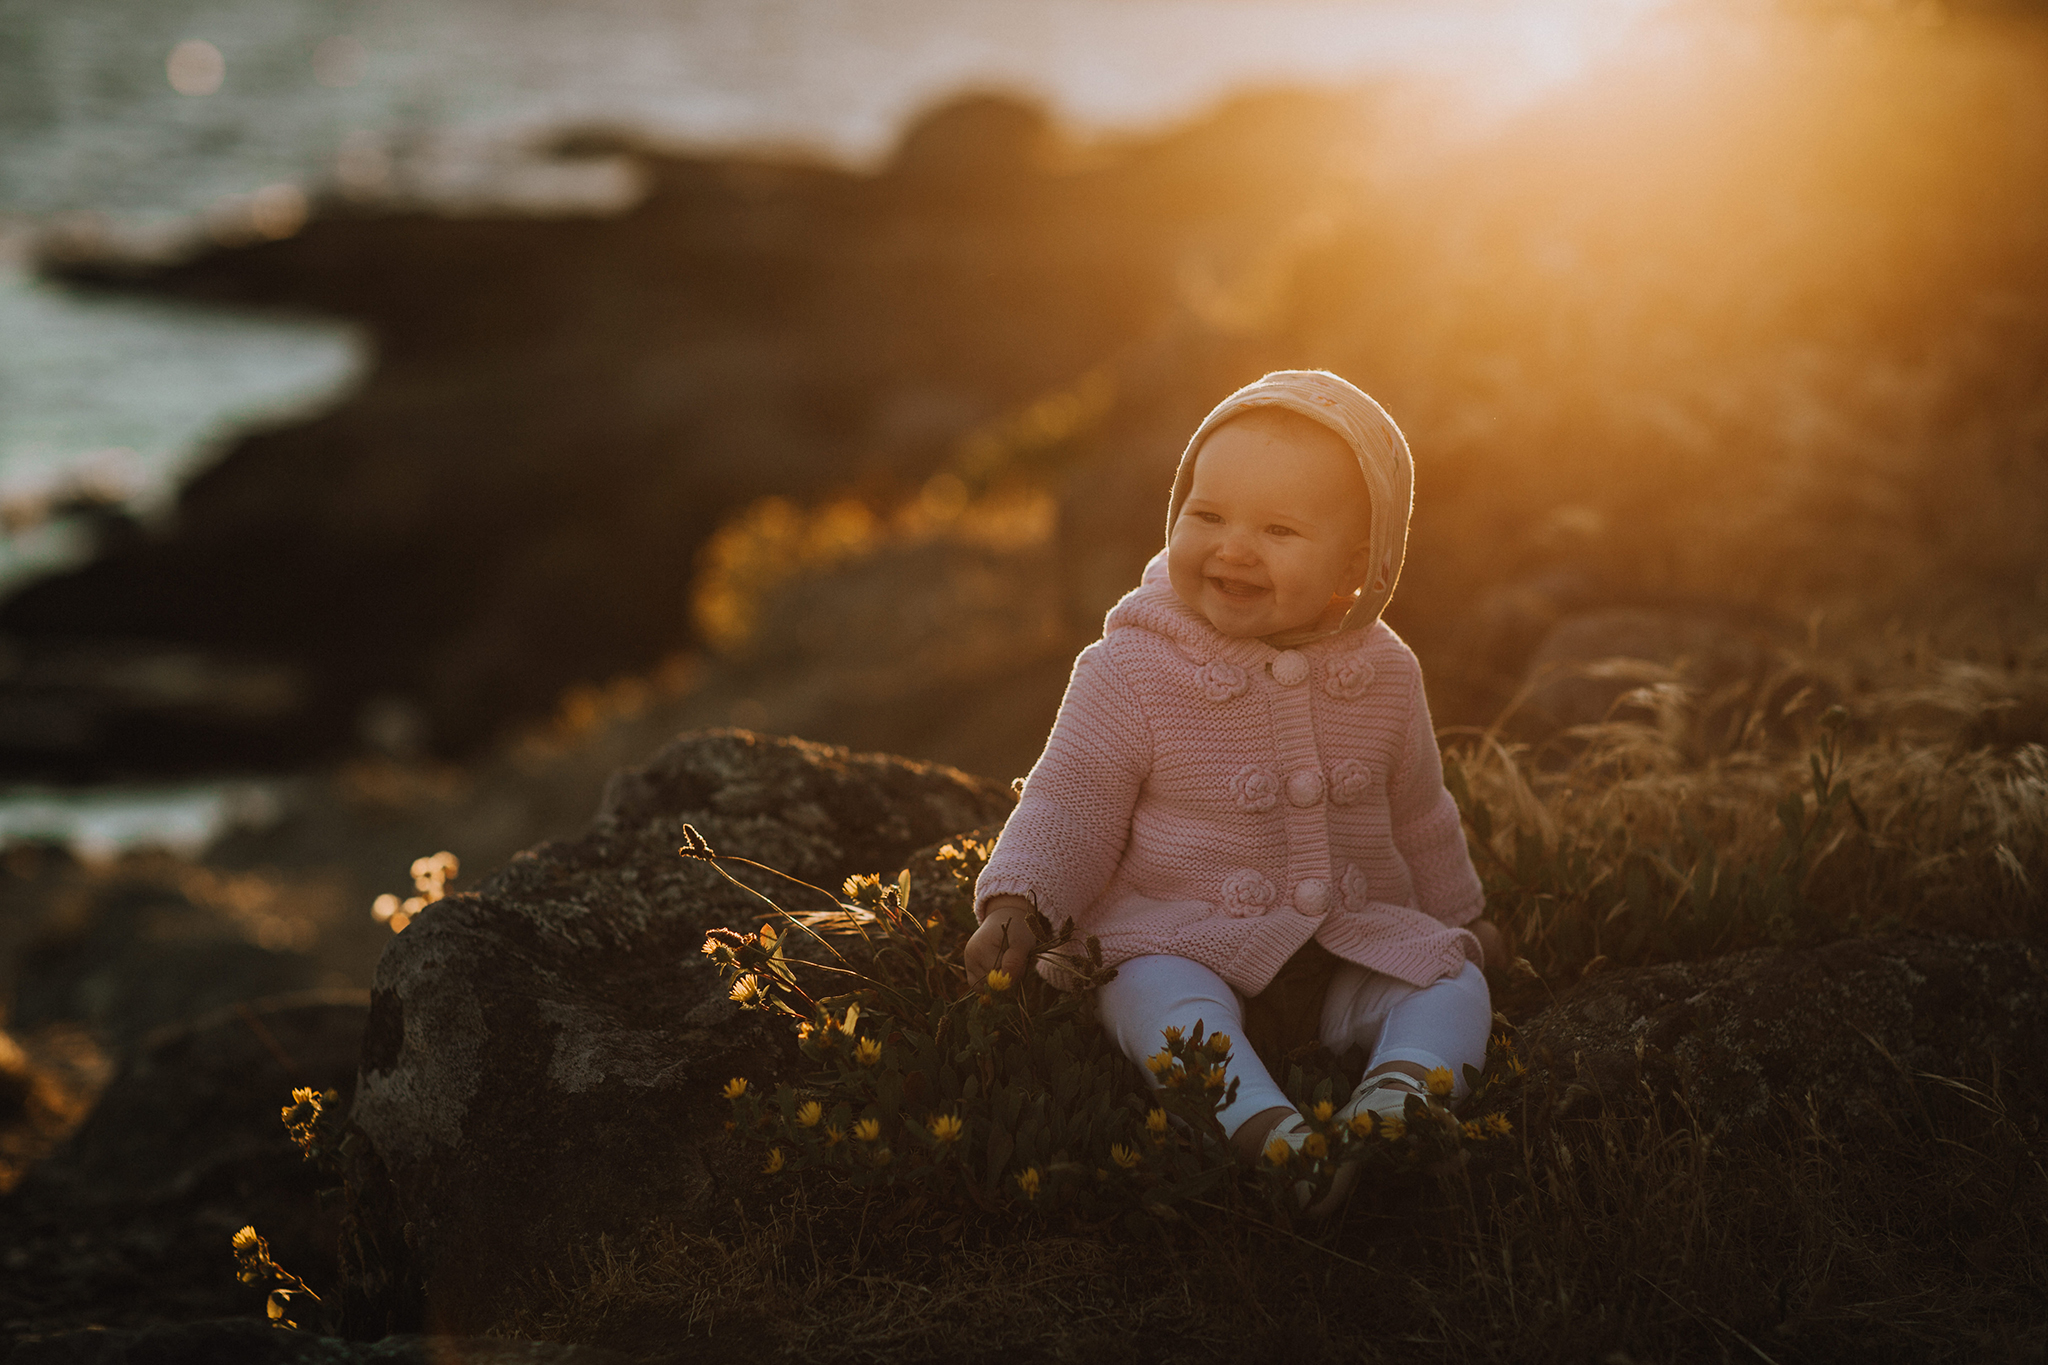 Laura Family Session in Victoria, BC, by Myrtle and Moss Photography, Victoria Wedding, family, maternity and newborn photographer